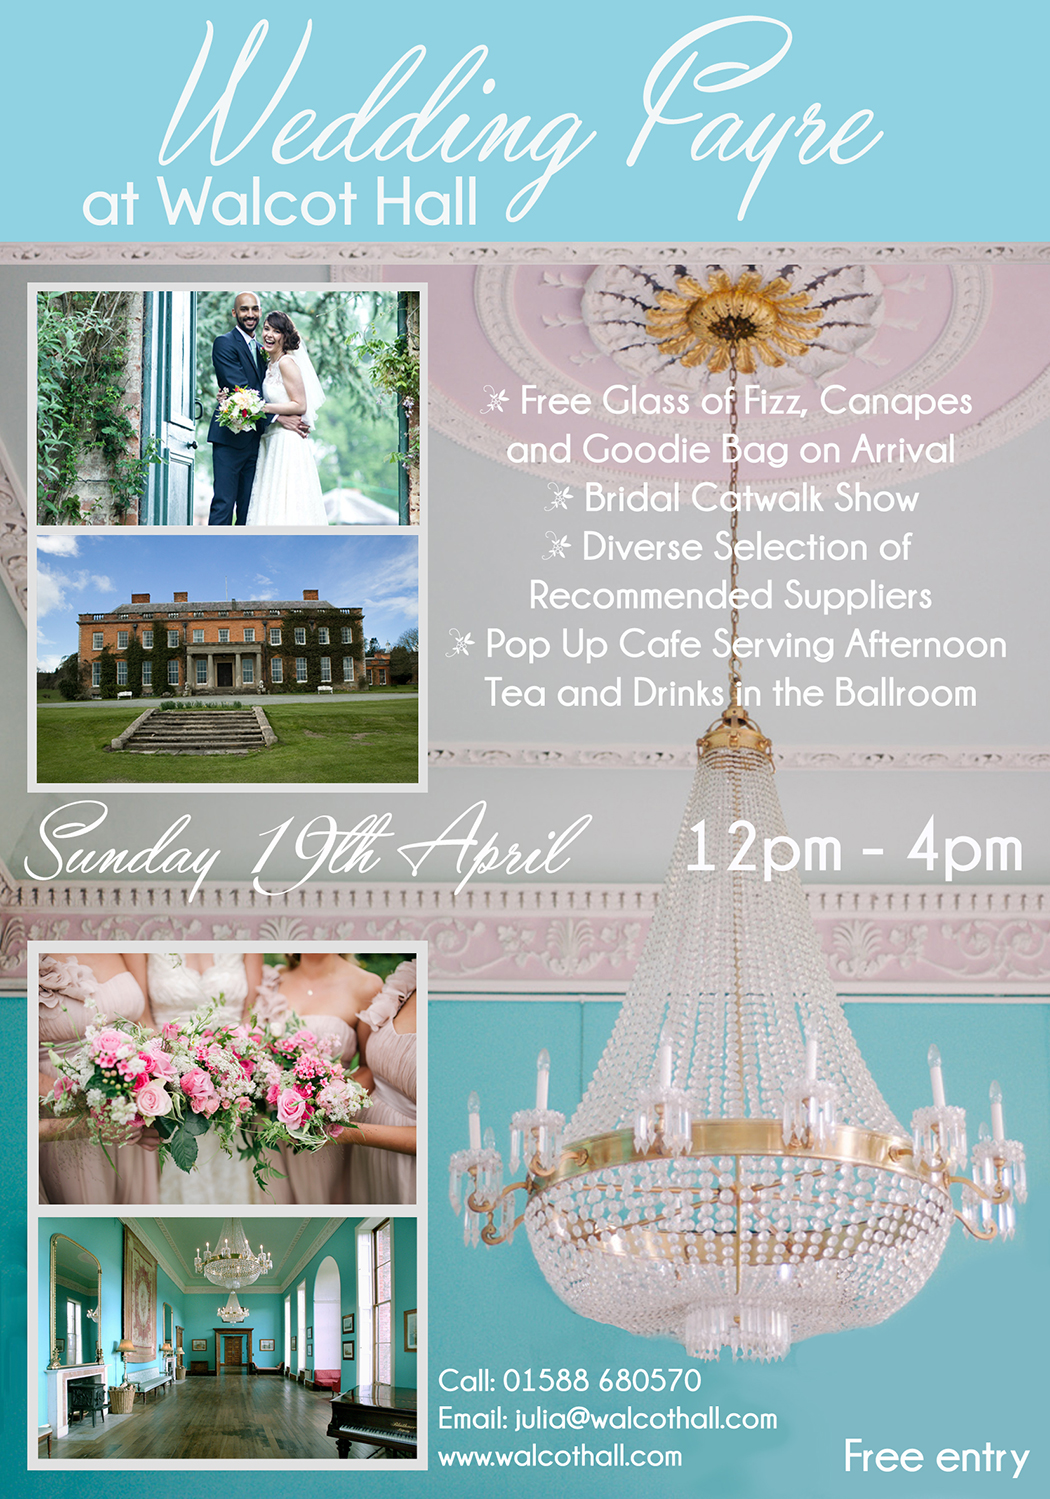 spring-wedding-fayre-walcot-hall-coco-wedding-venues-001